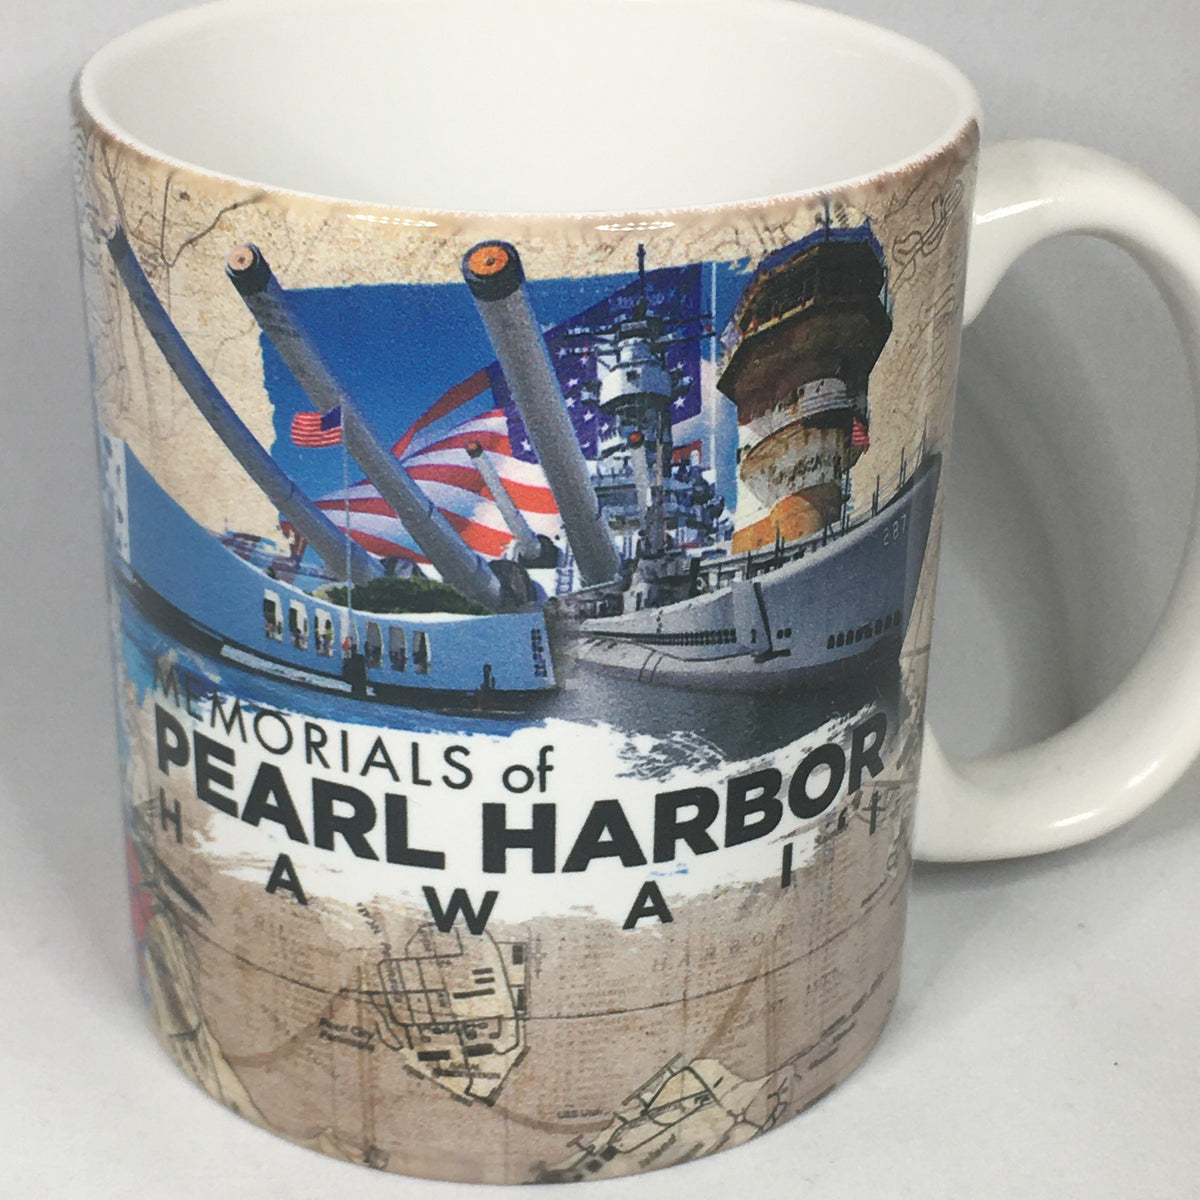 Memorials of Pearl Harbor Hawaii Mug